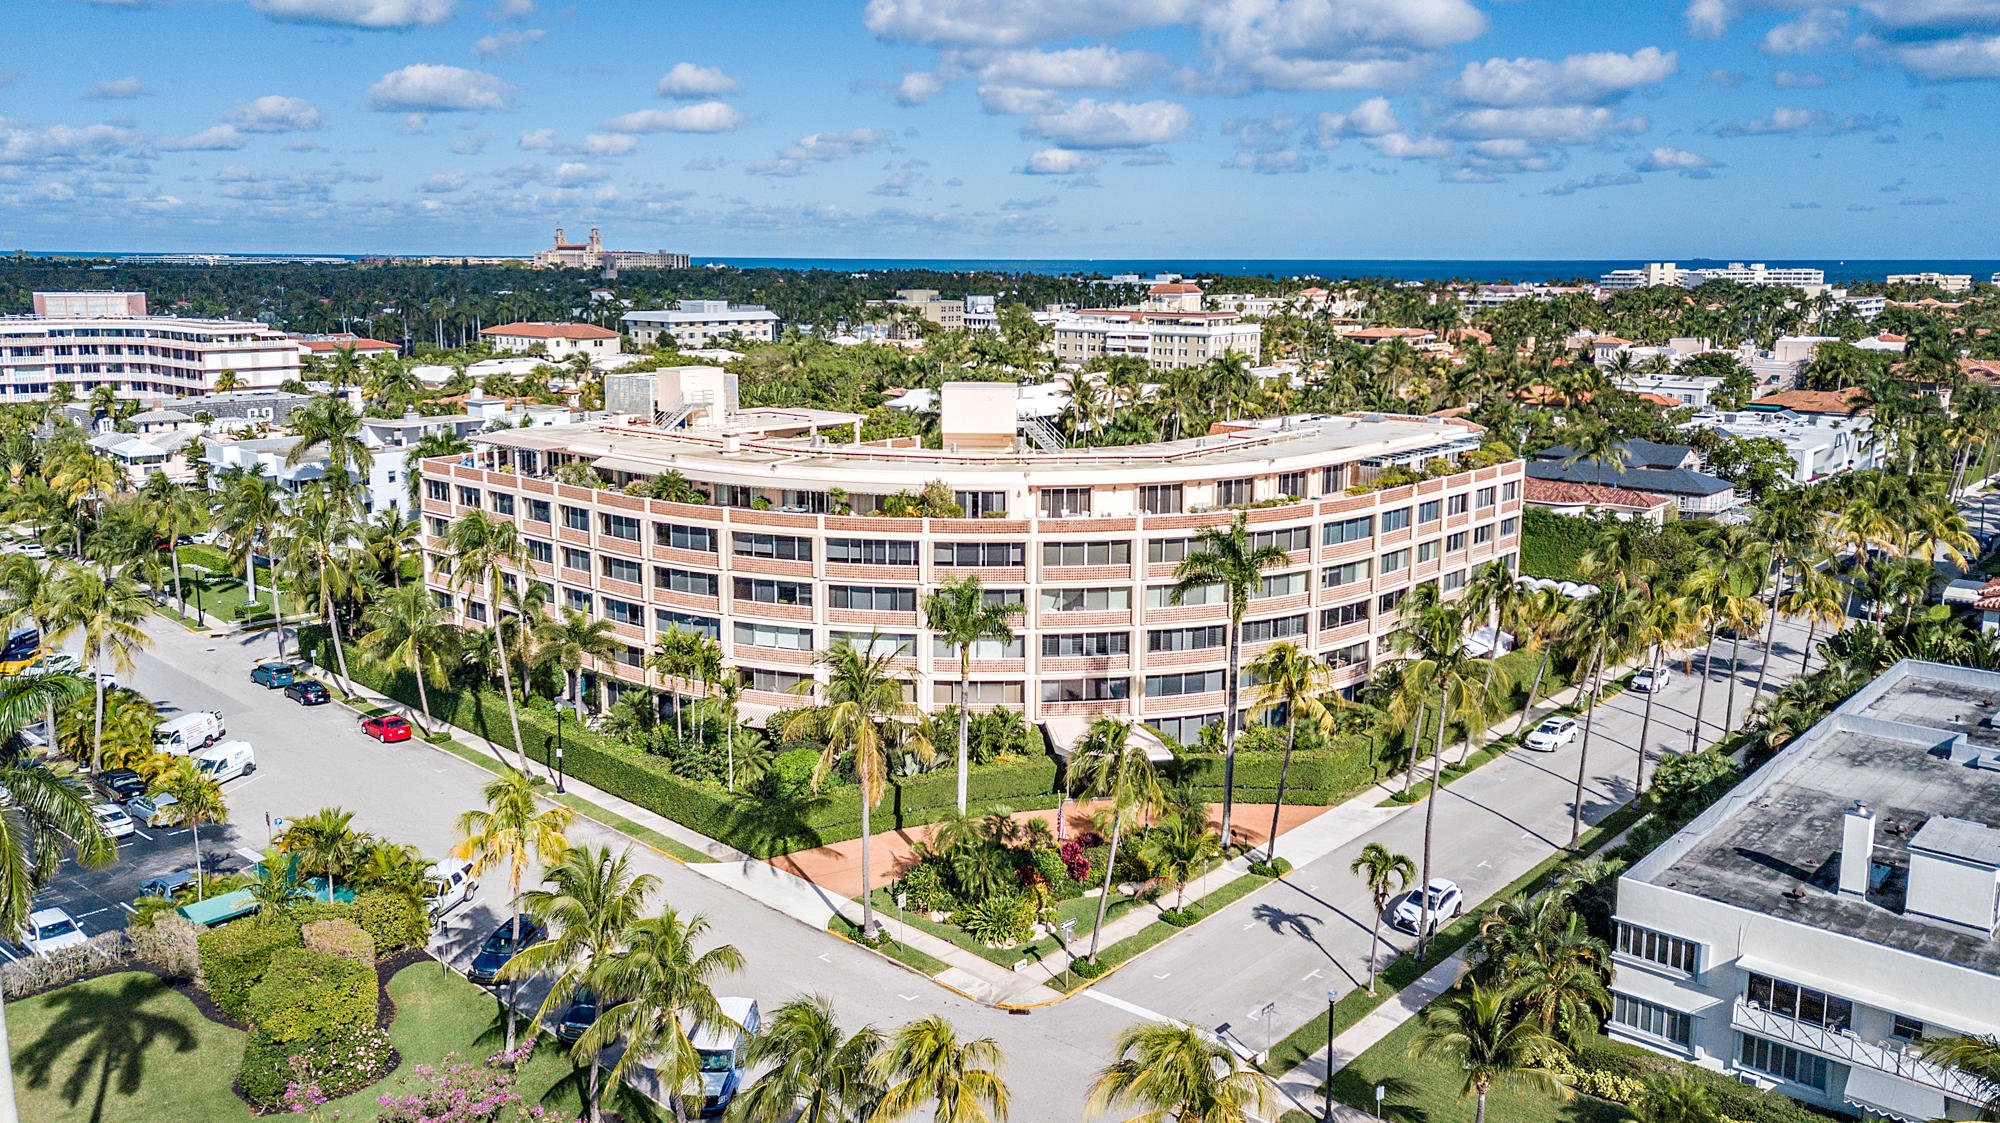 PARK PLACE PALM BEACH